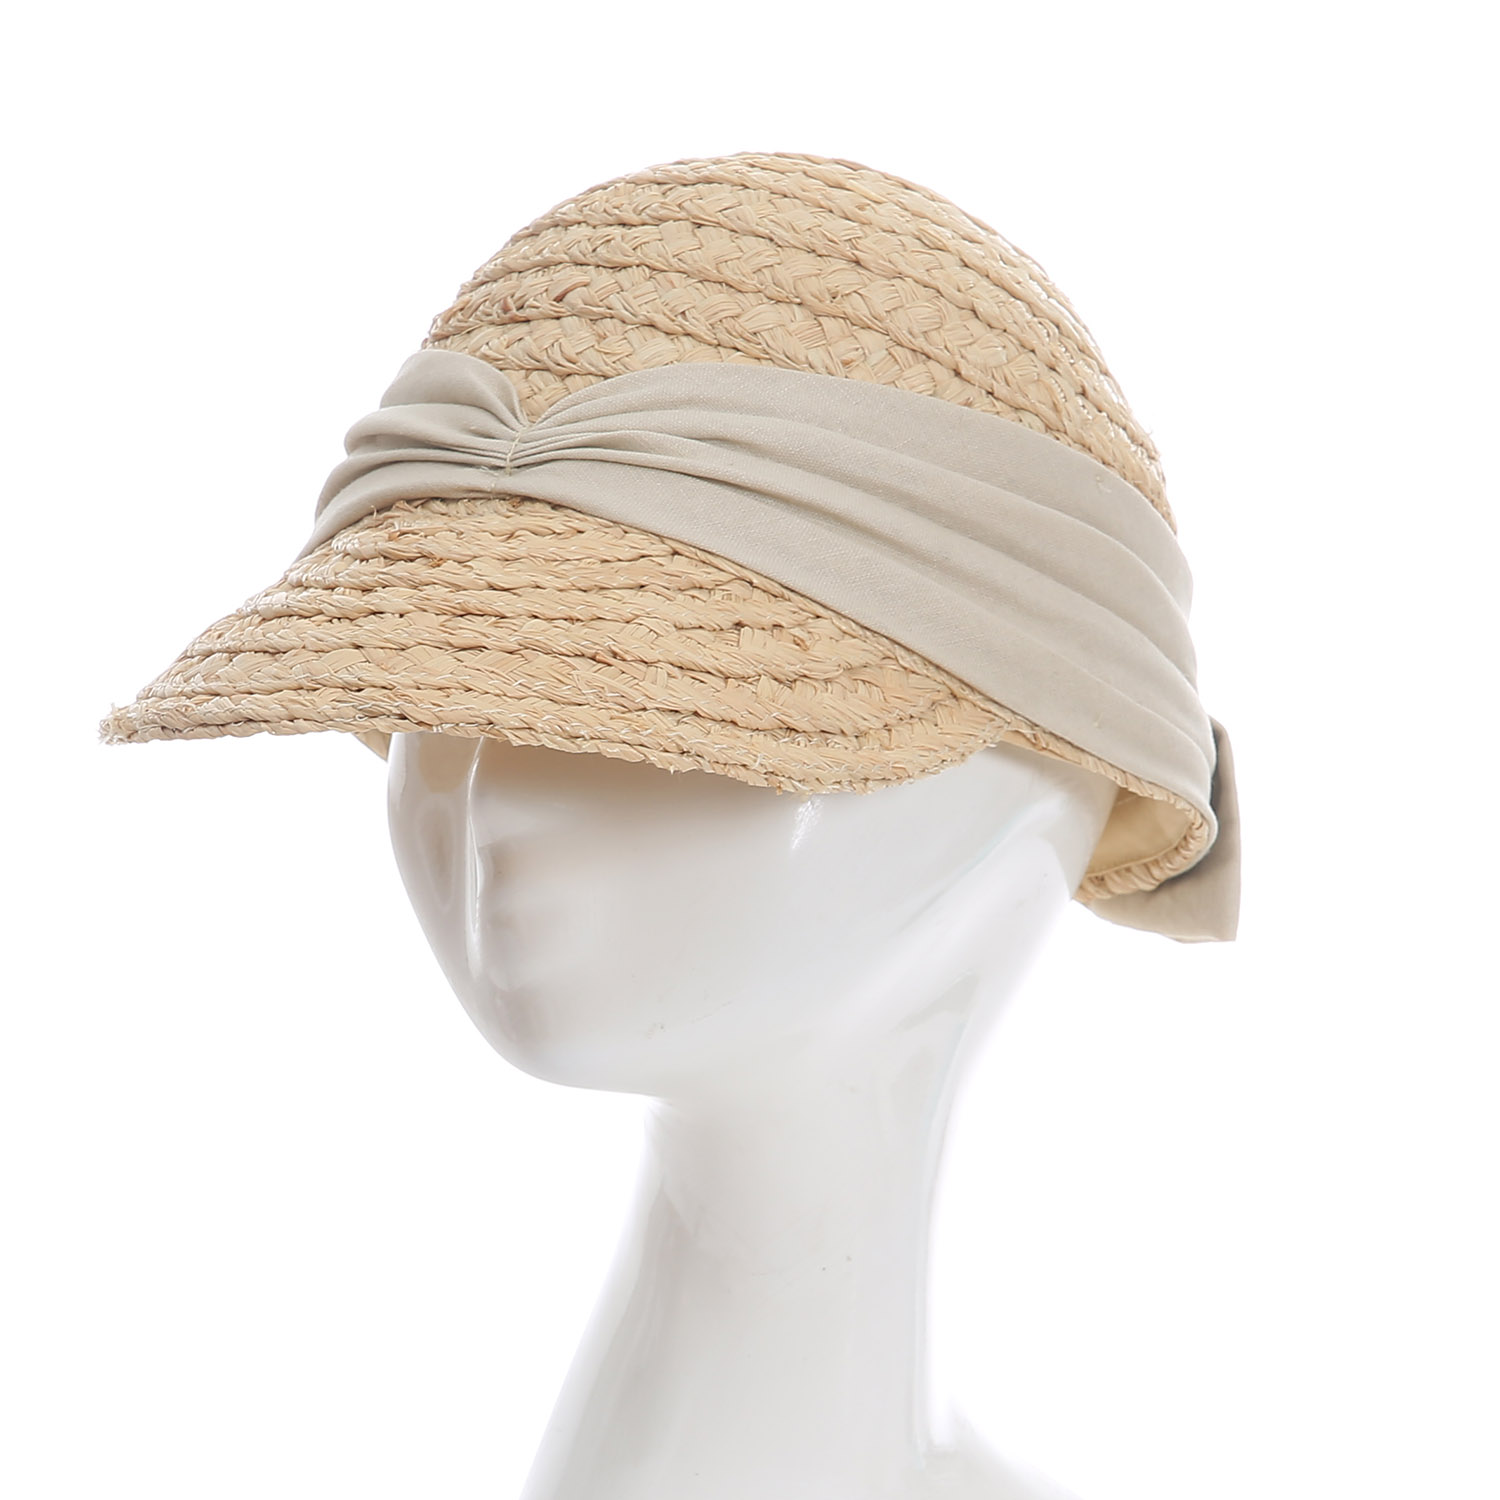 Straw beach hats